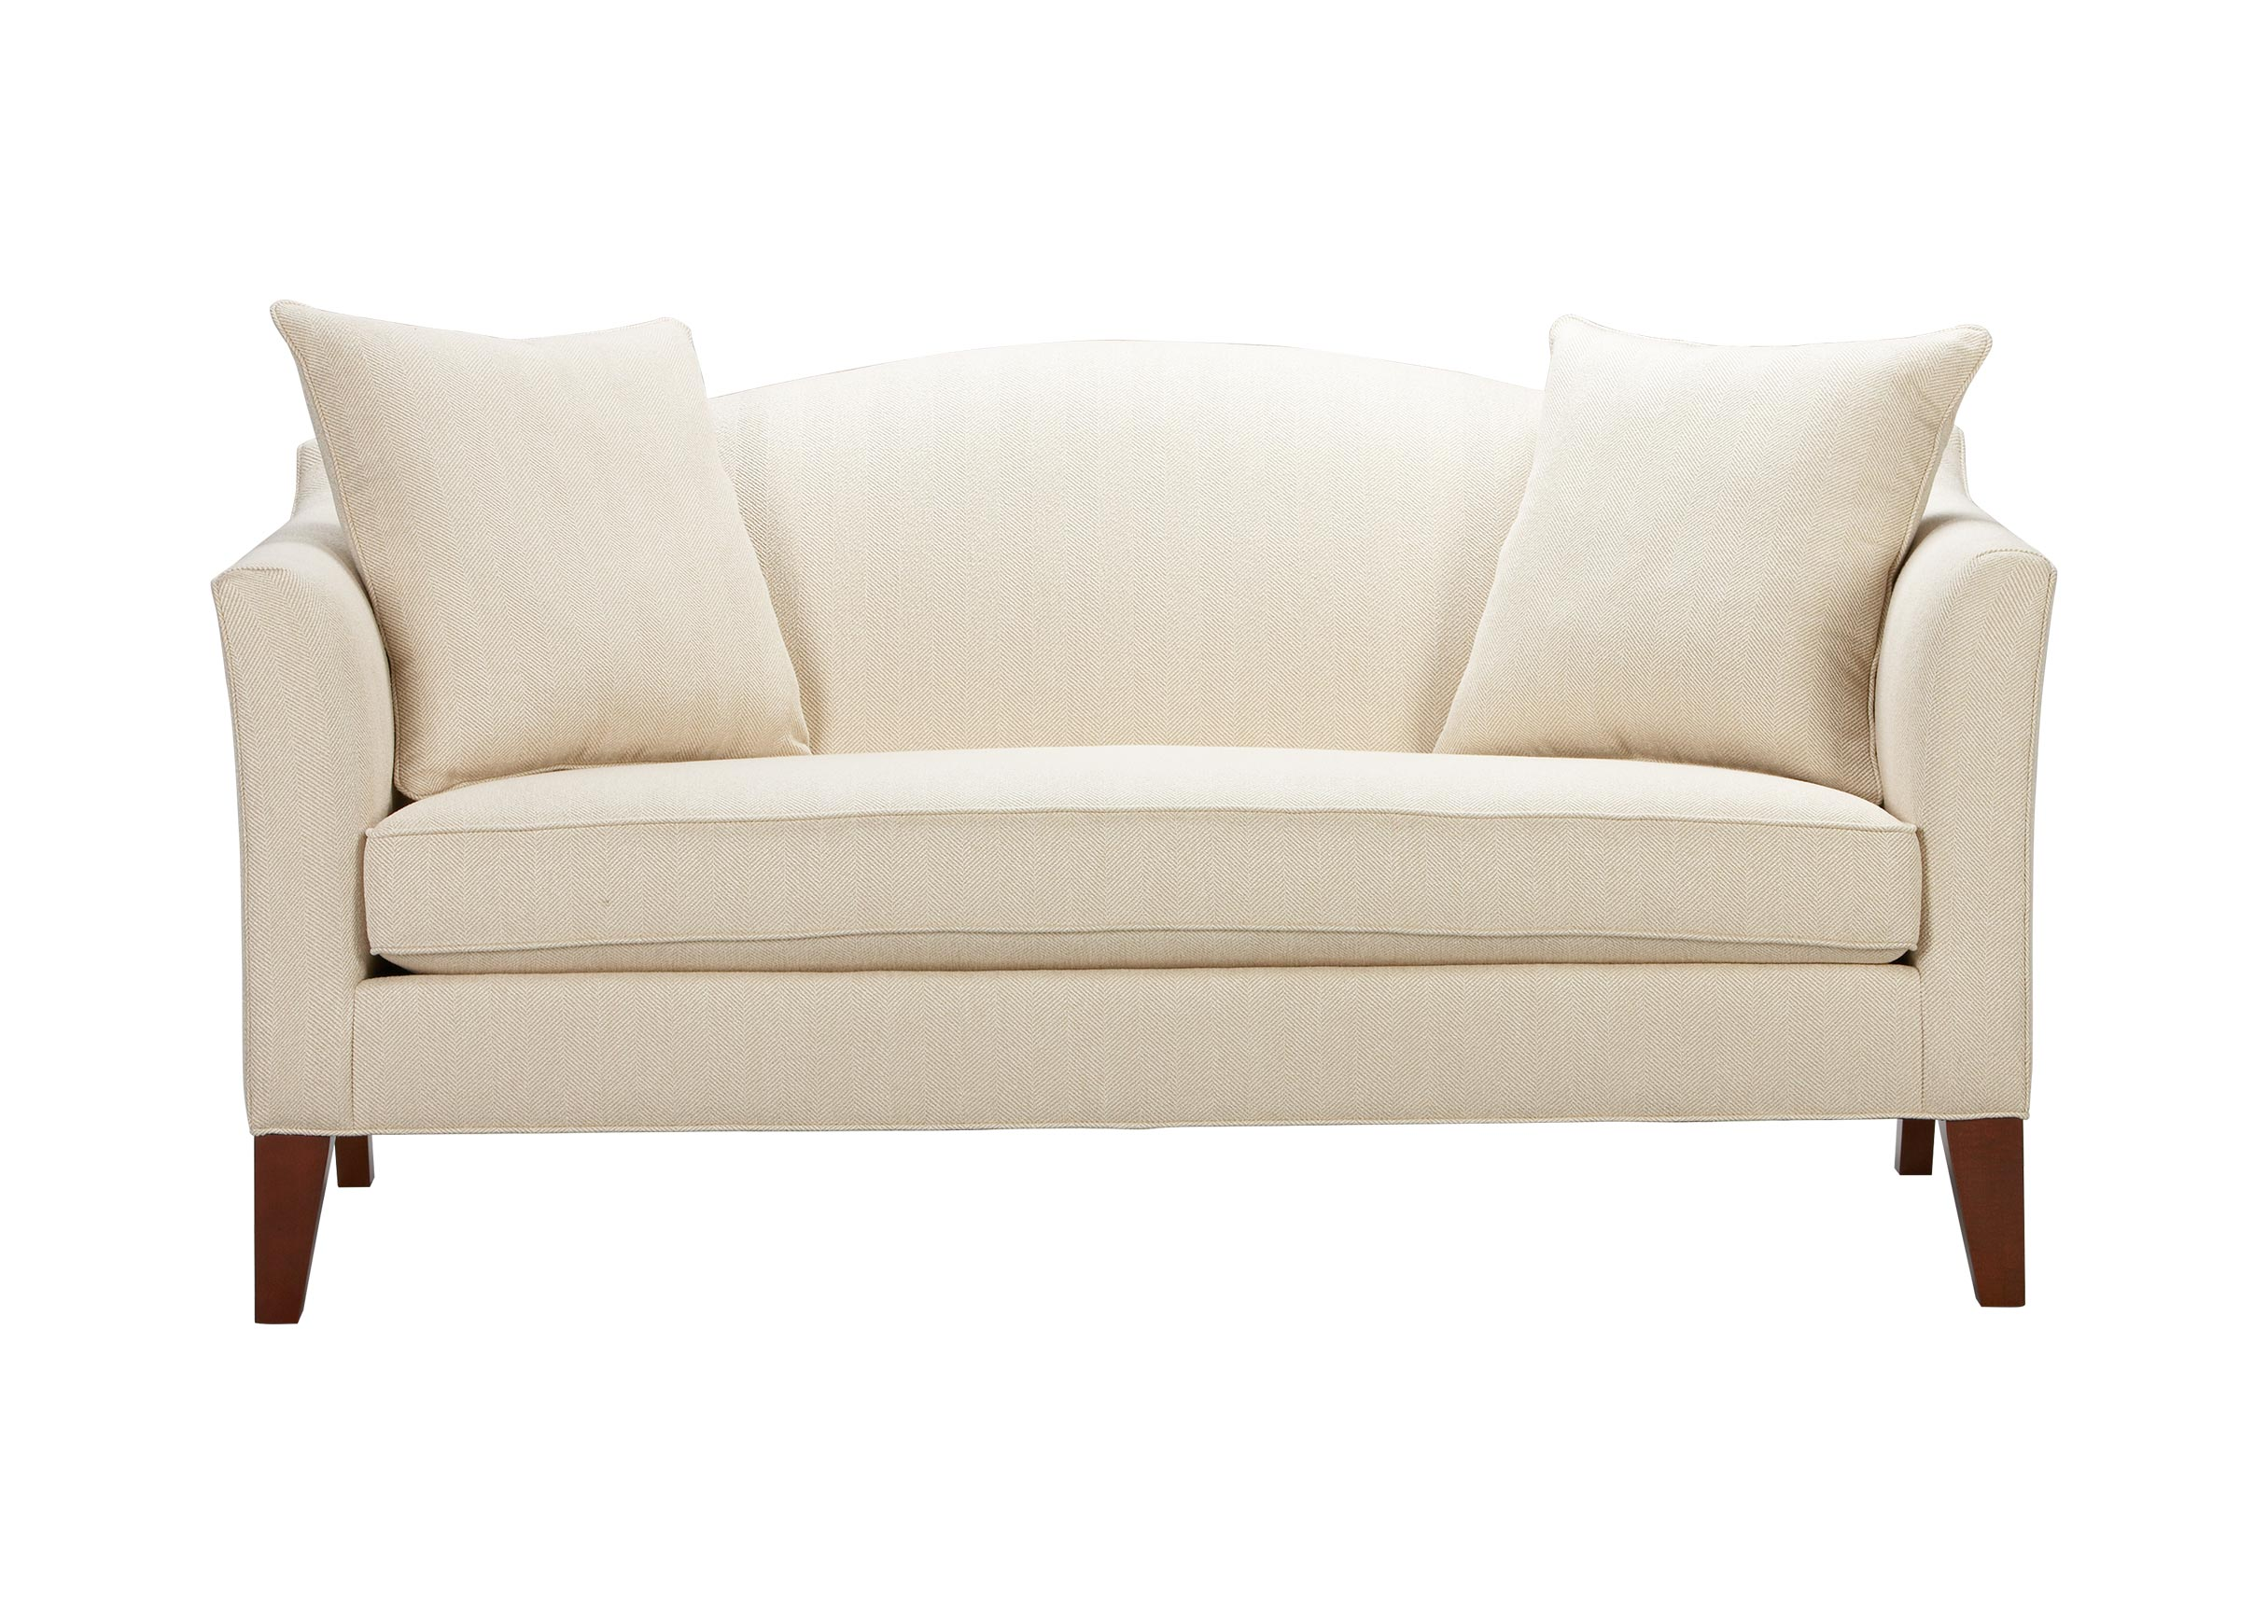 Sofas By Ethan Allen Hartwell Sofa | Sofas & Loveseats | Ethan Allen